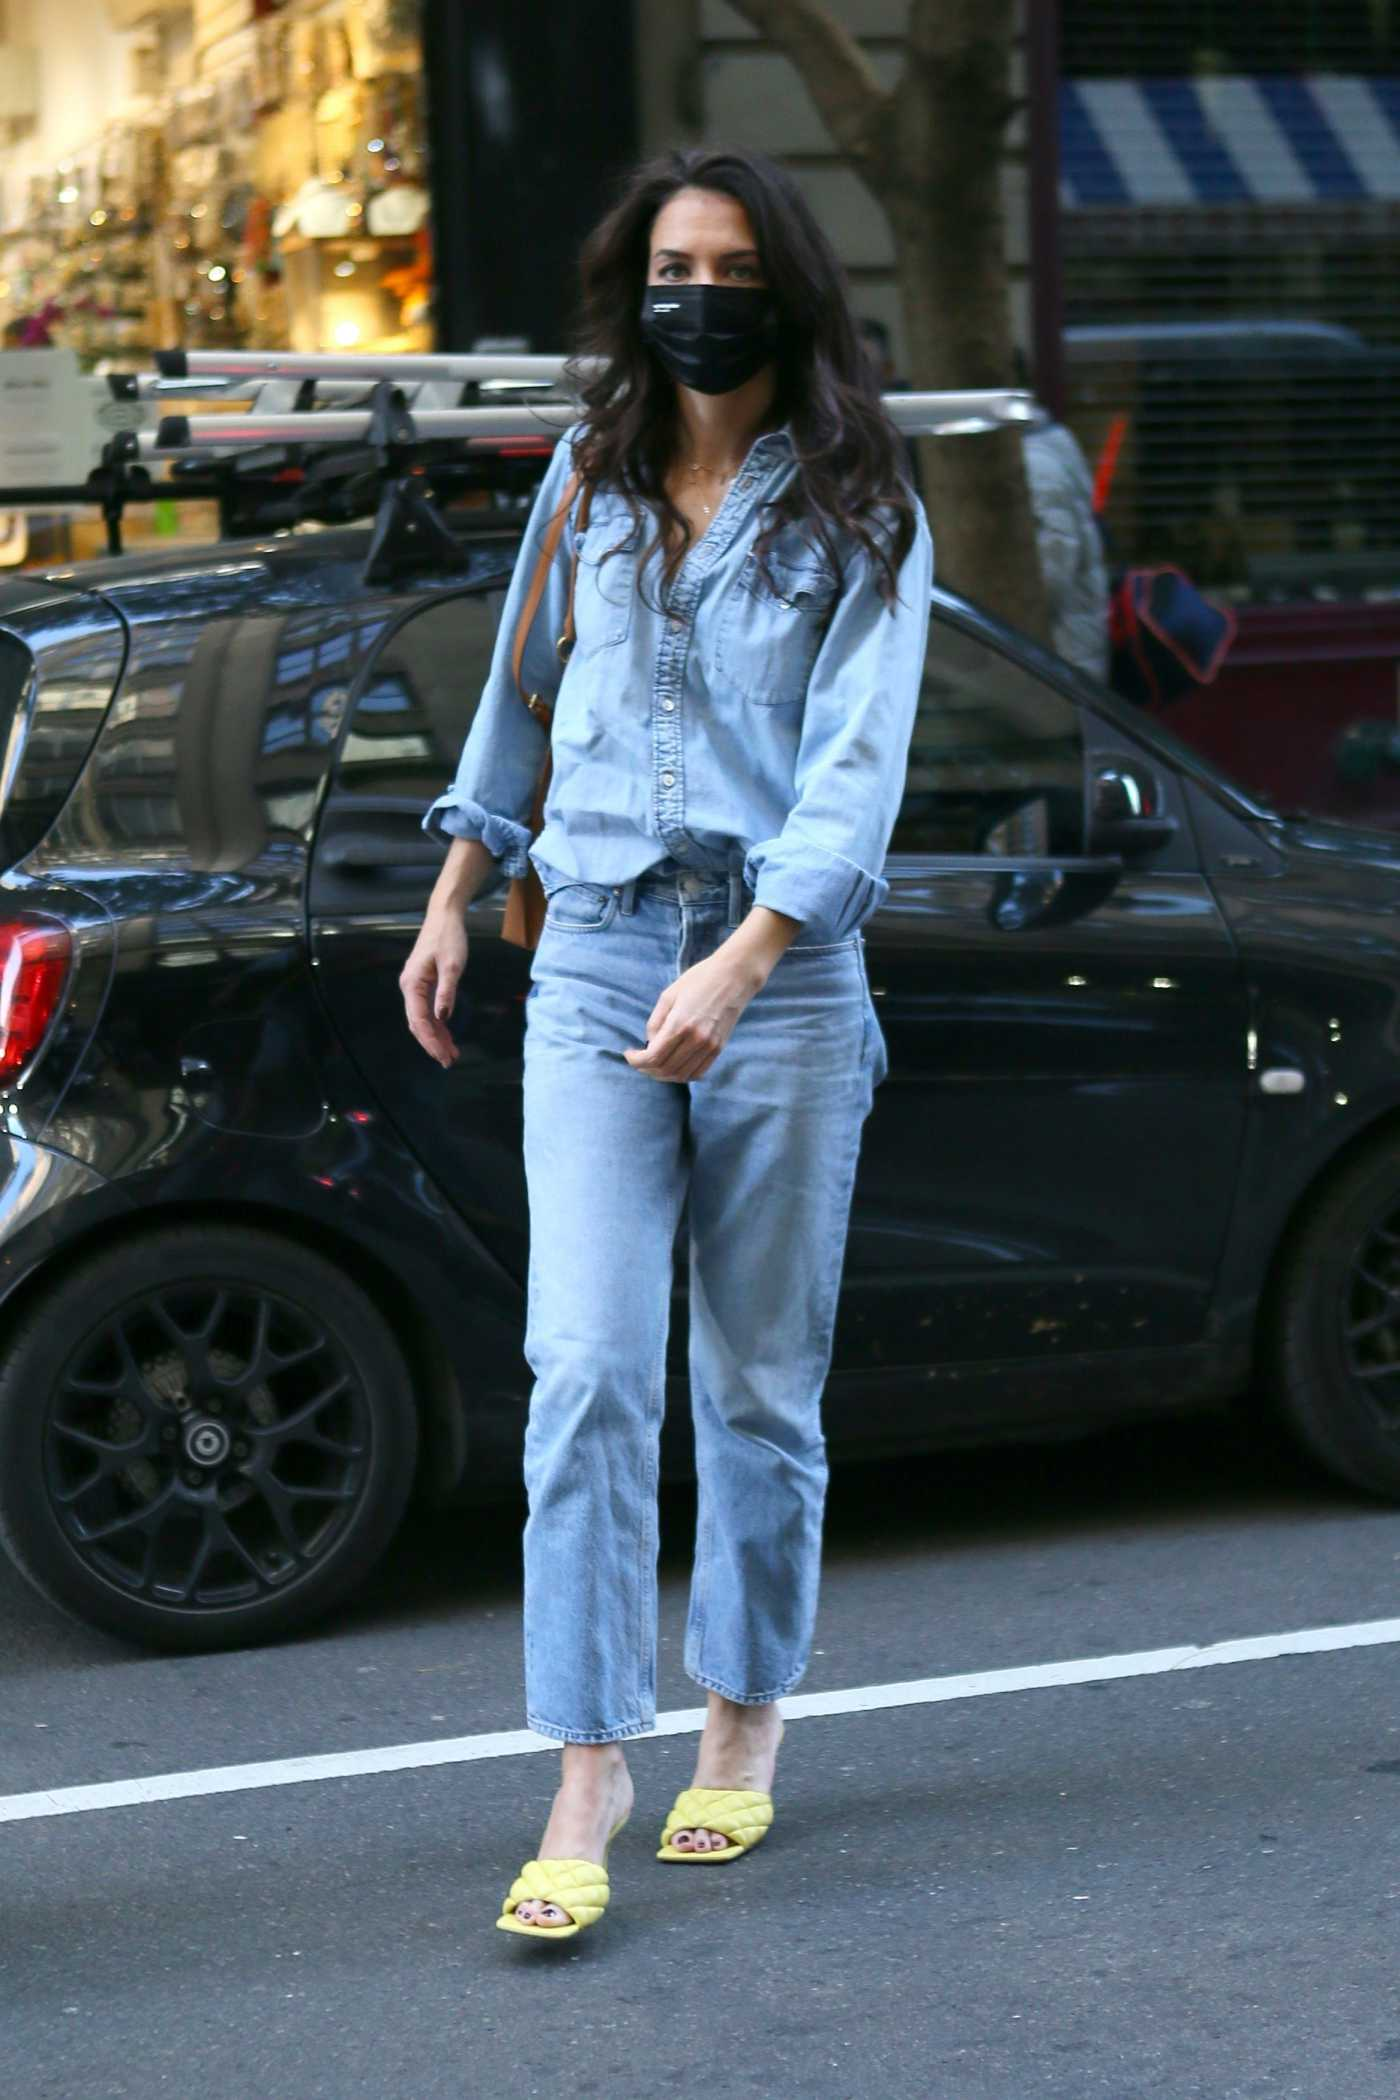 Katie Holmes in a Double Denim Outfit Heads to an Office Building in Manhattan, NYC 11/09/2020